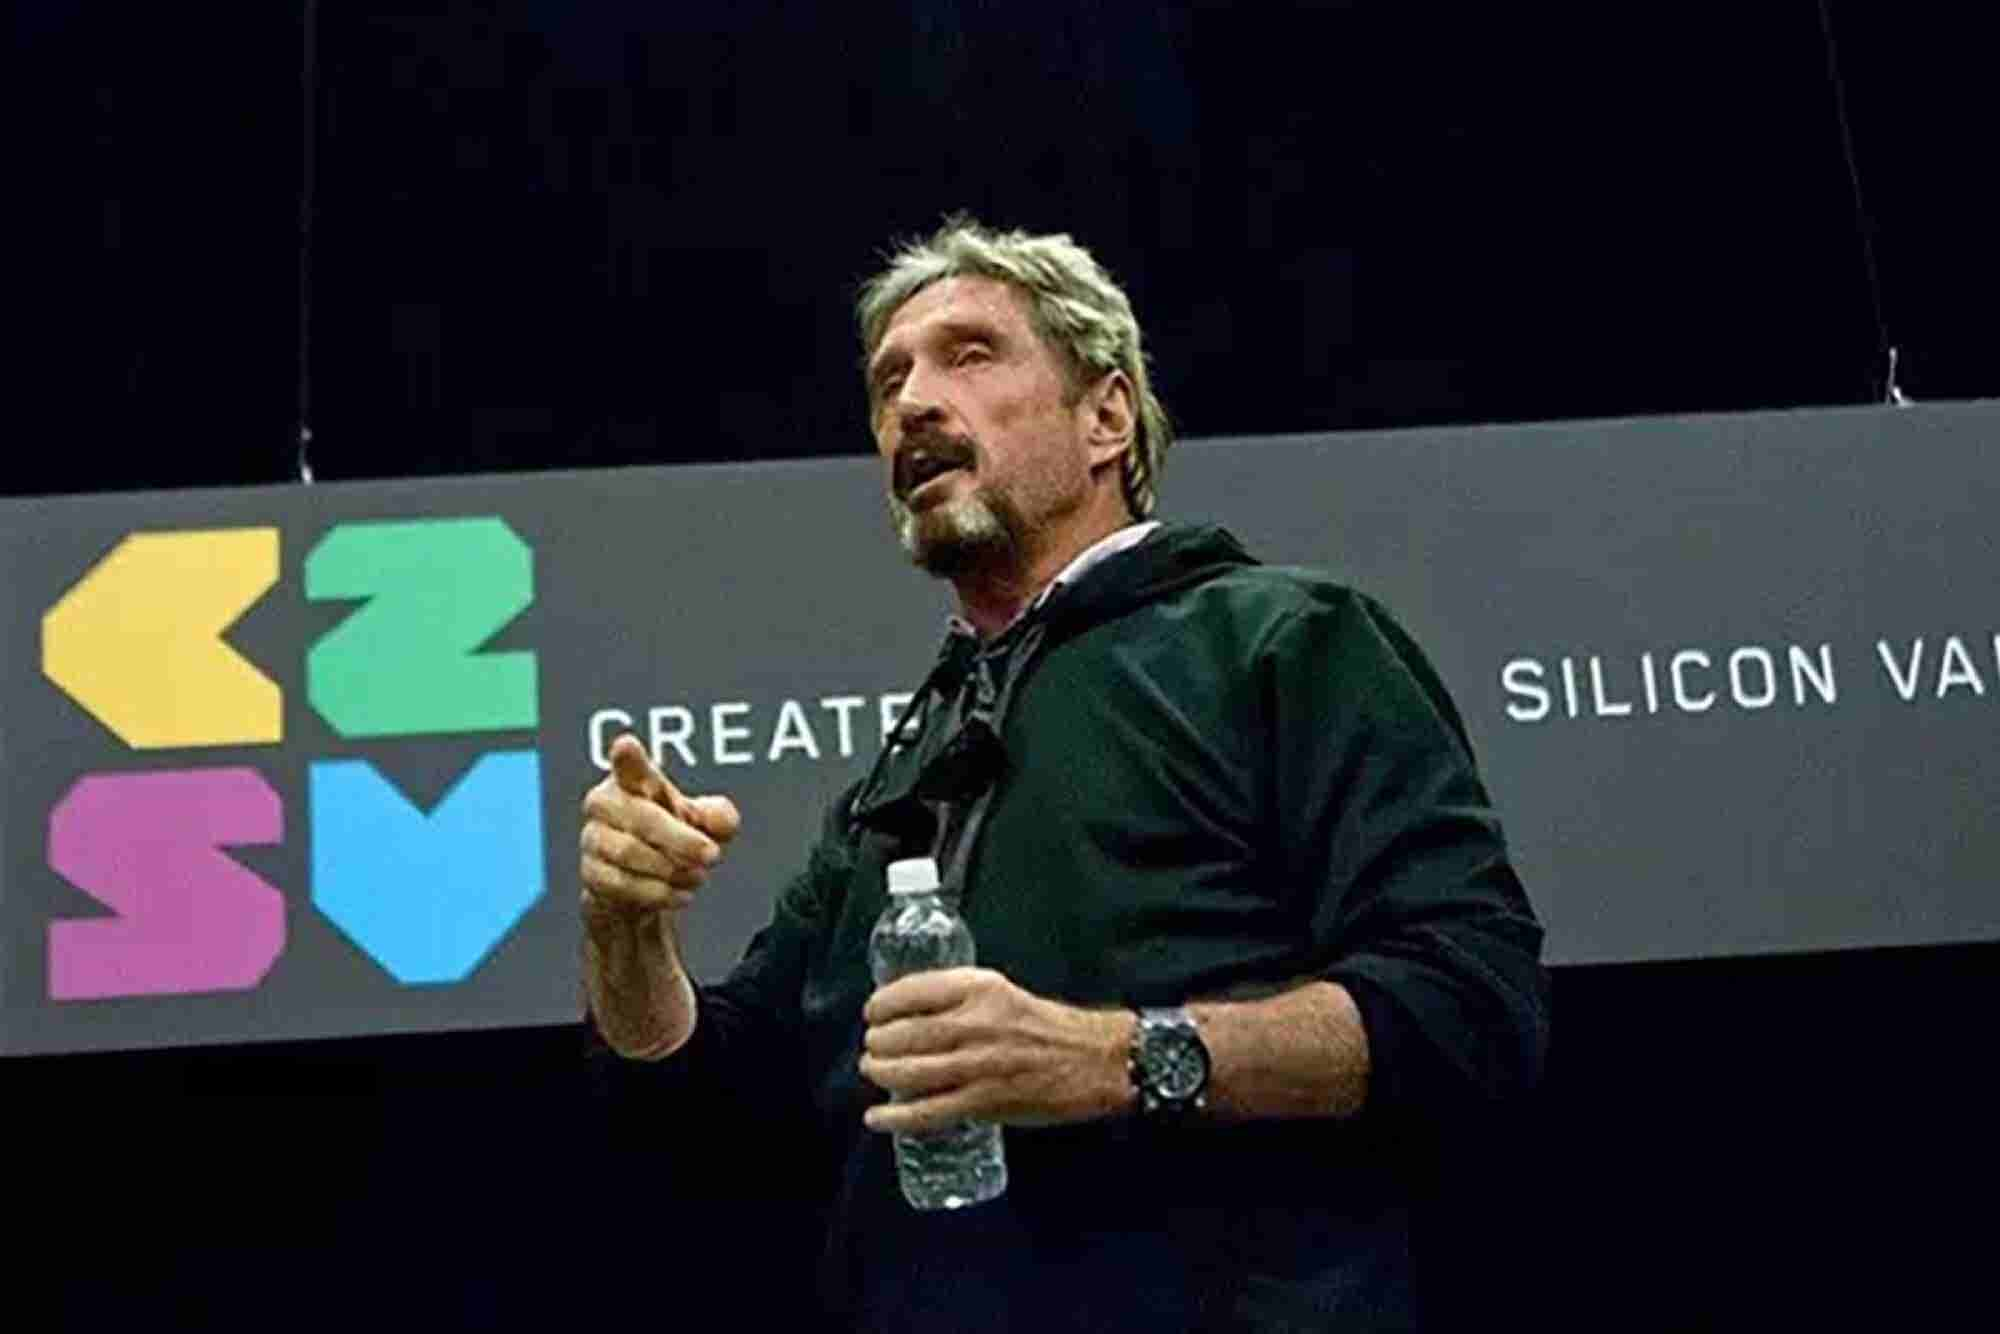 Are Security Threats to Power and Water Plants Real? You Betcha, Says John McAfee.